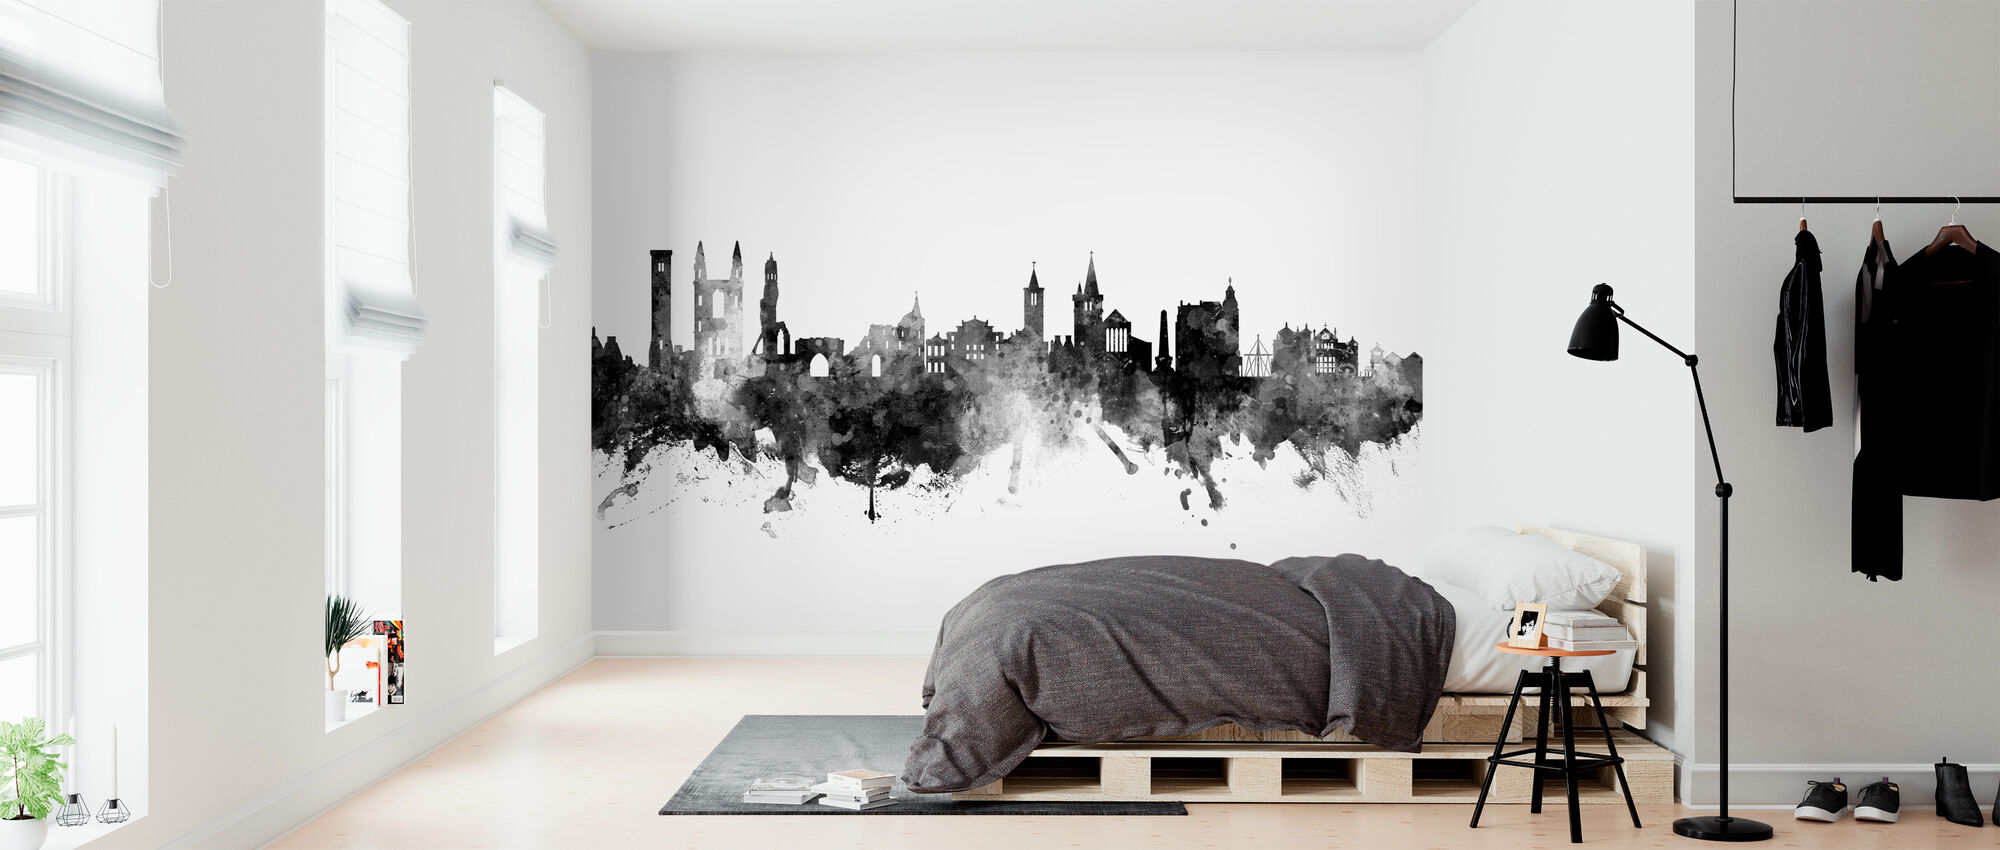 St Andrews Scotland Skyline - Behang - Slaapkamer